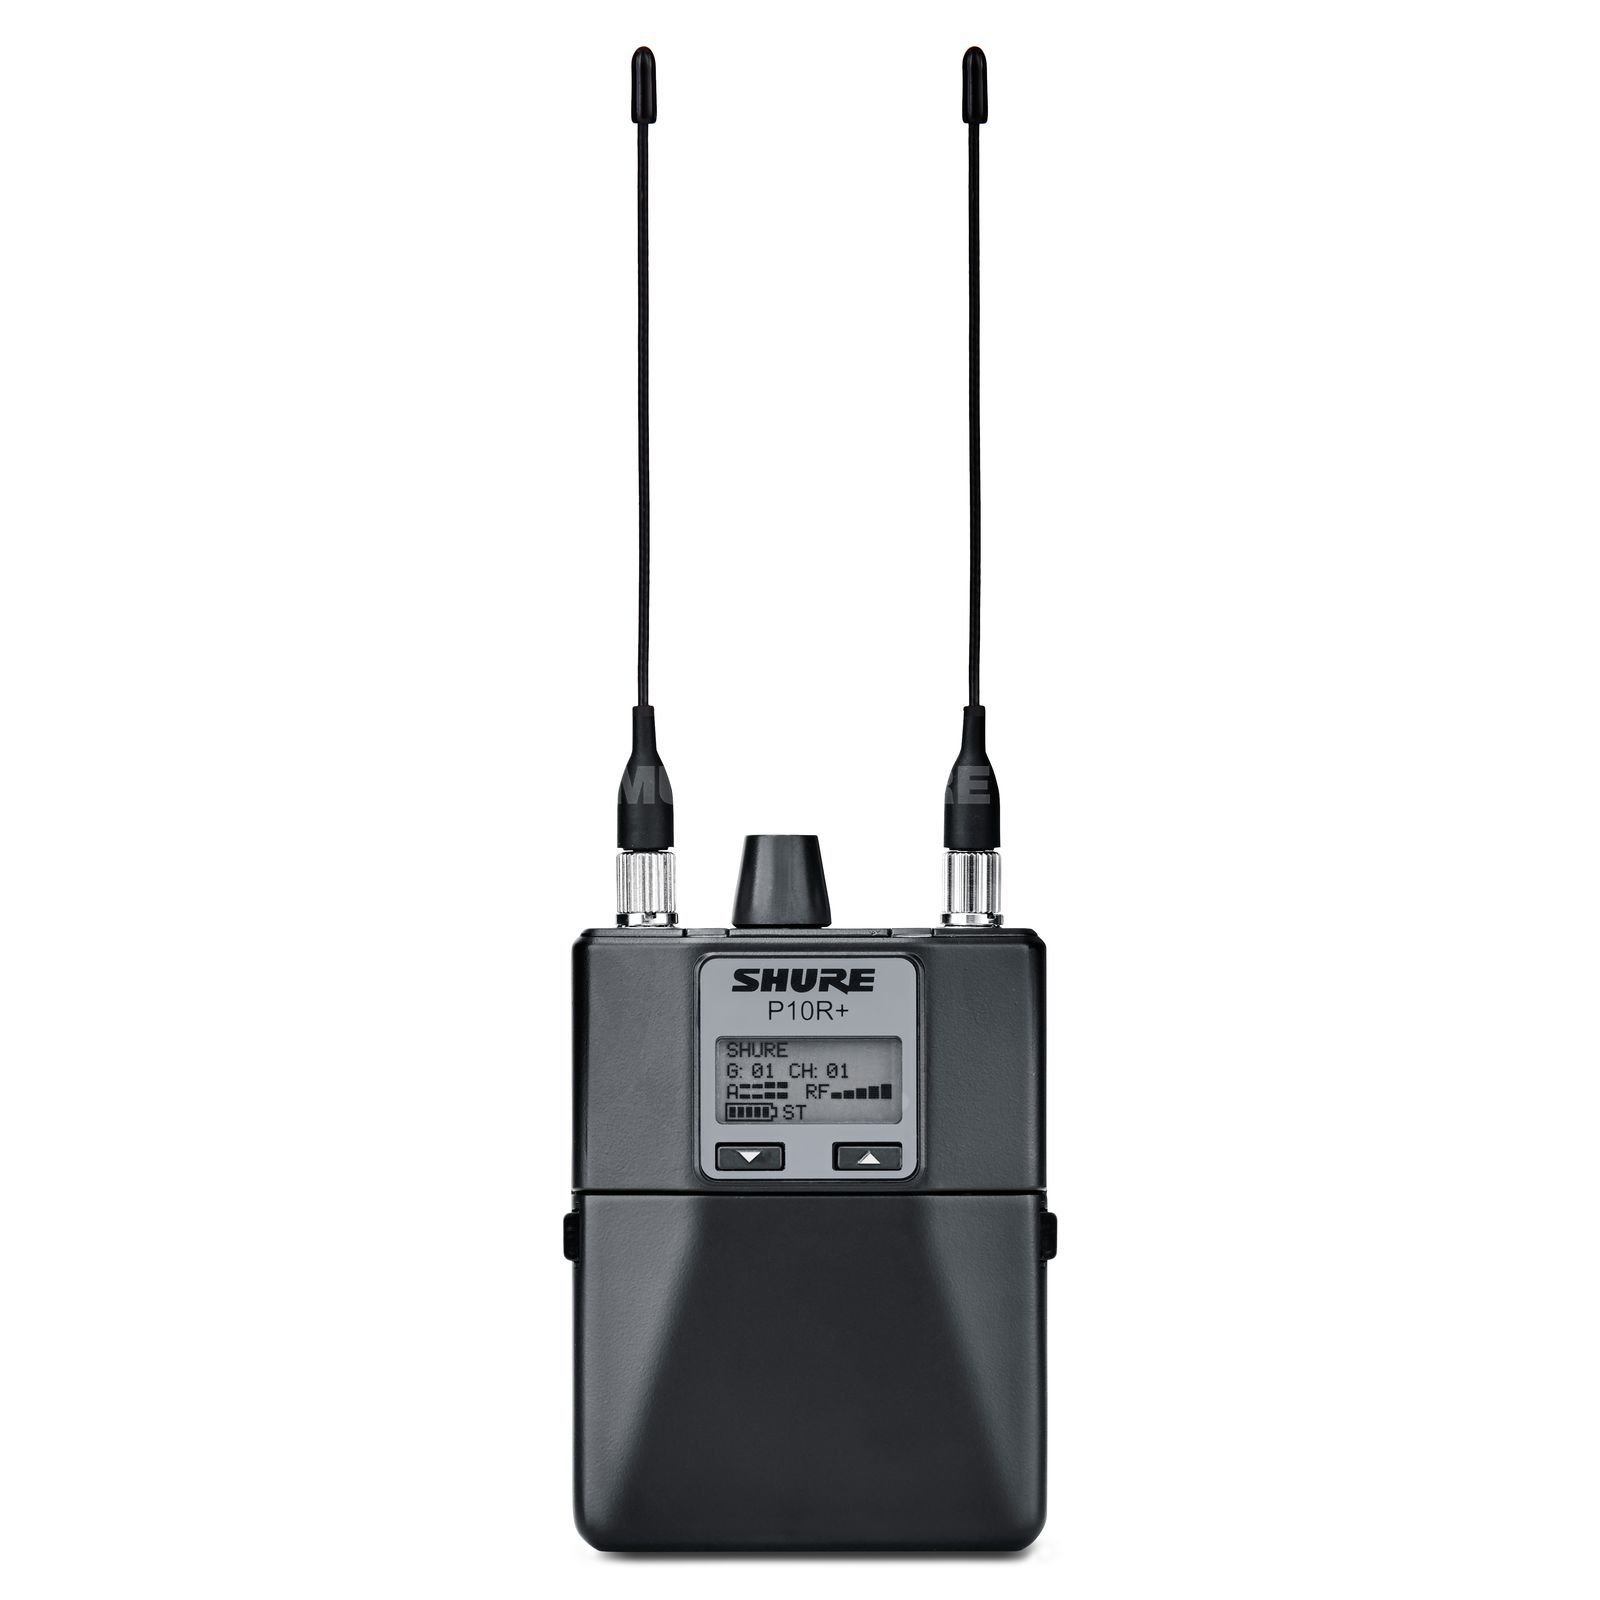 Shure P10R+ Pocket Receiver 554-626MHz Изображение товара